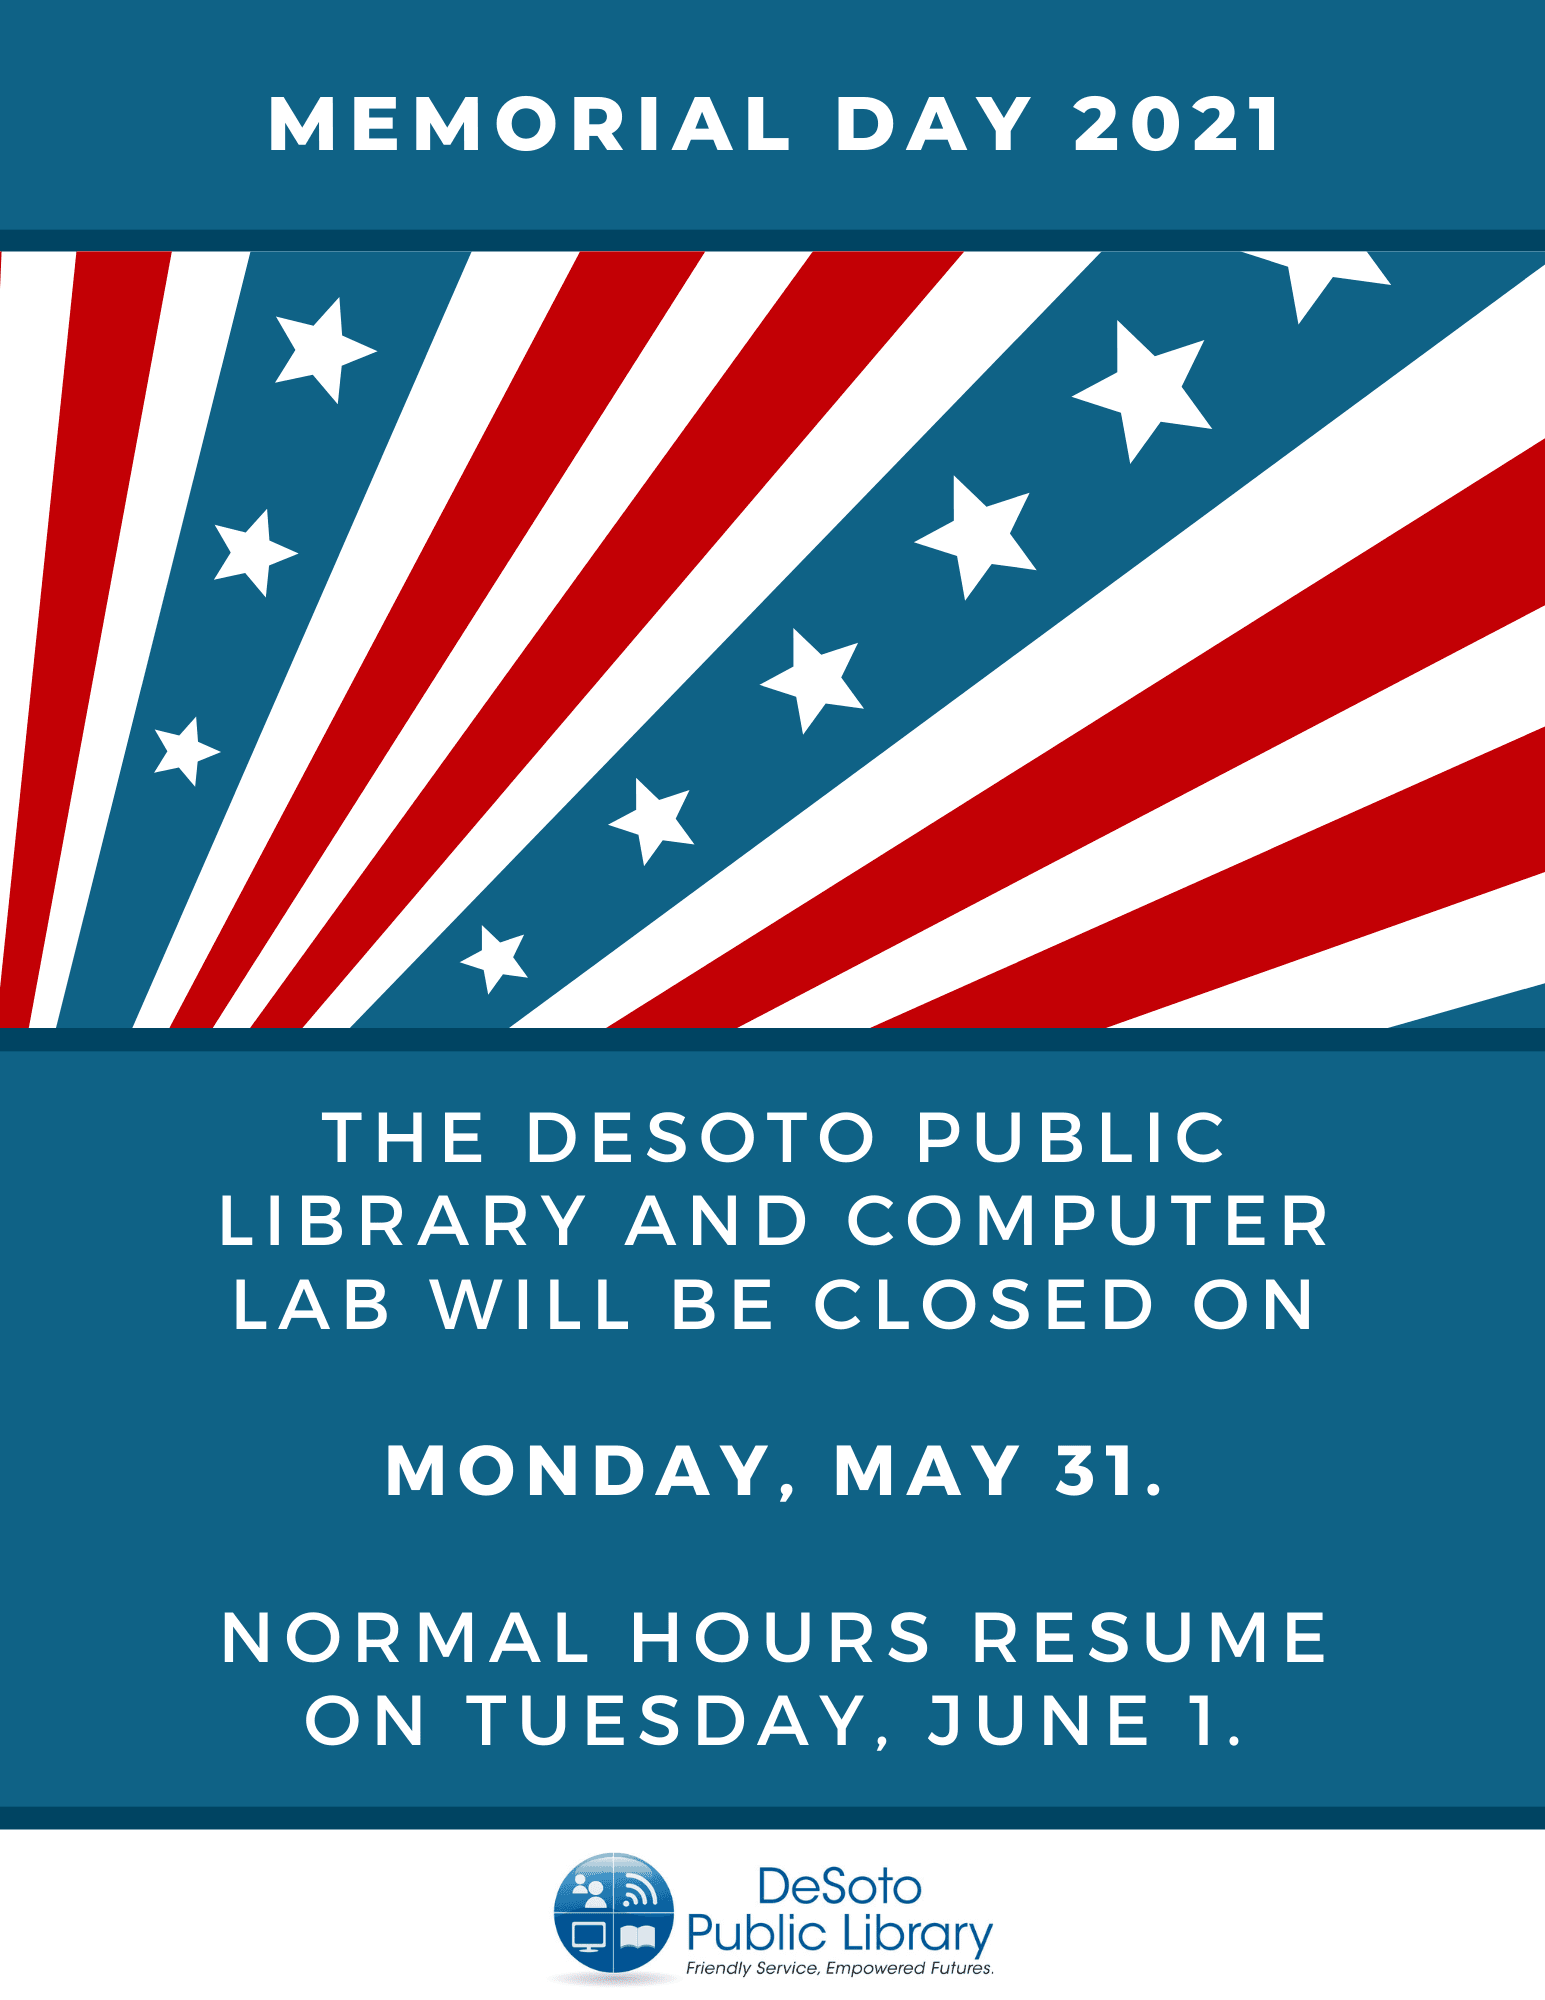 DeSoto Public Library Memorial Day Hours 2021 image